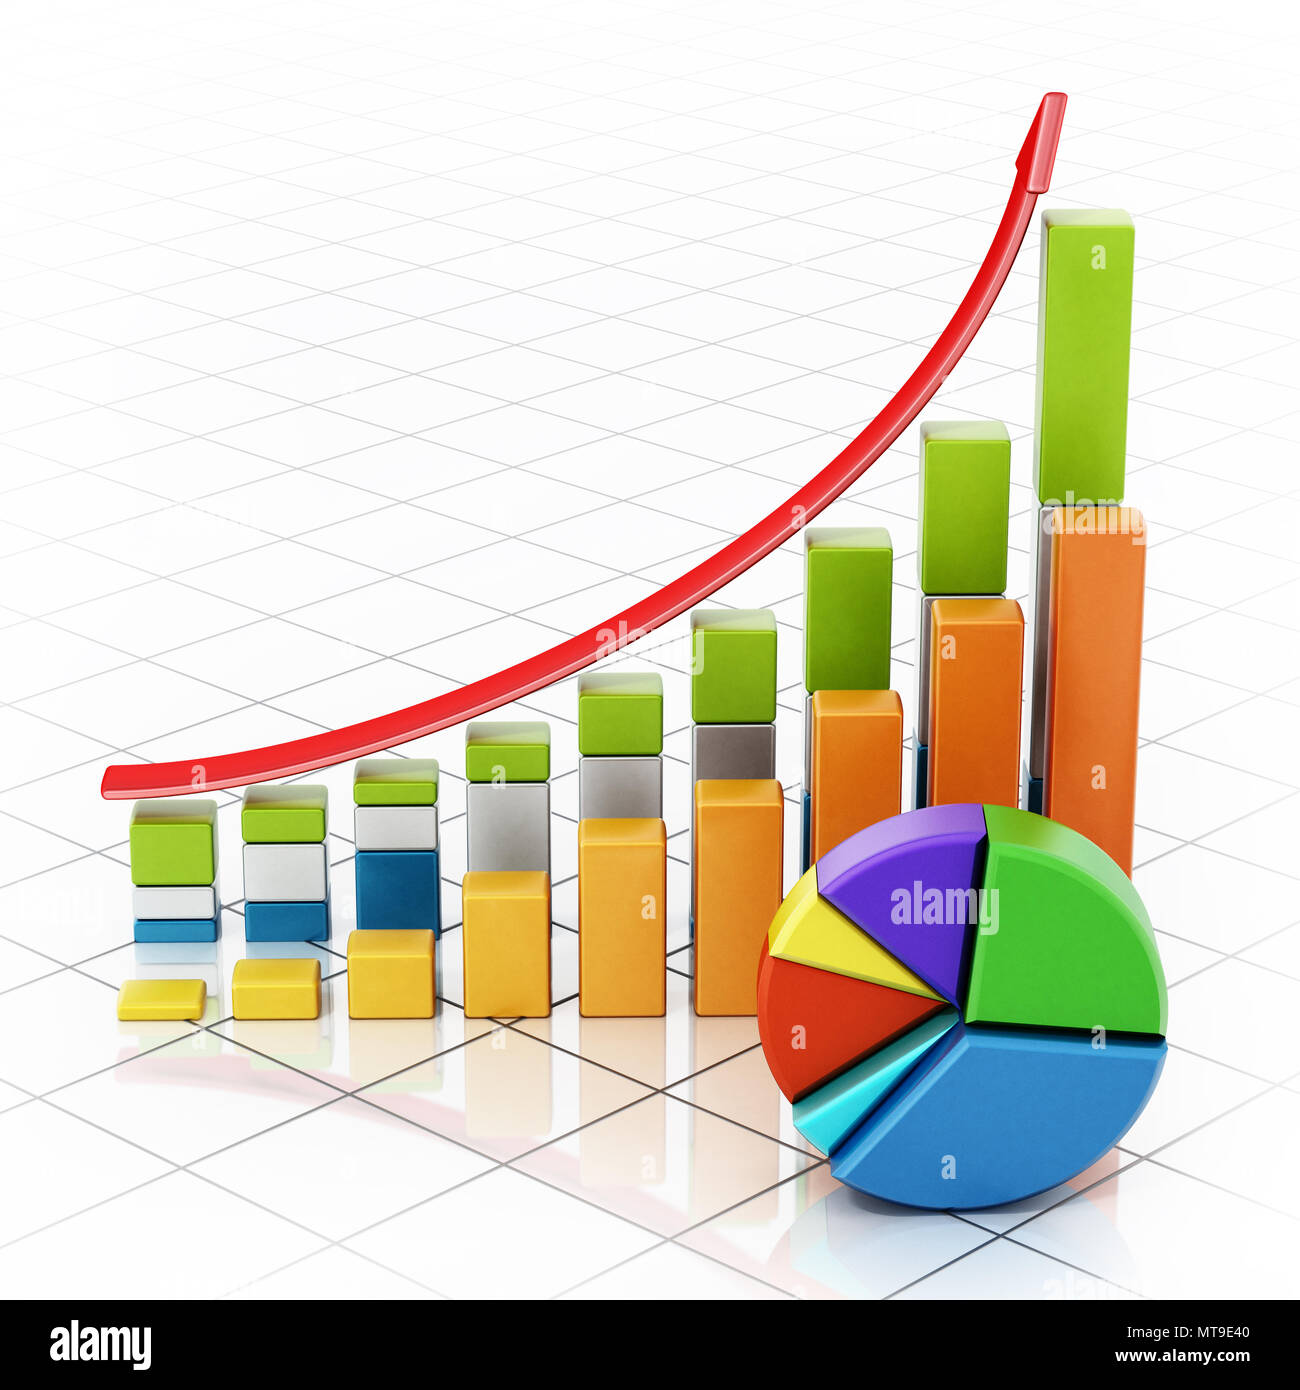 Rising sale bars and pie chart showing financial data. 3D illustration. - Stock Image